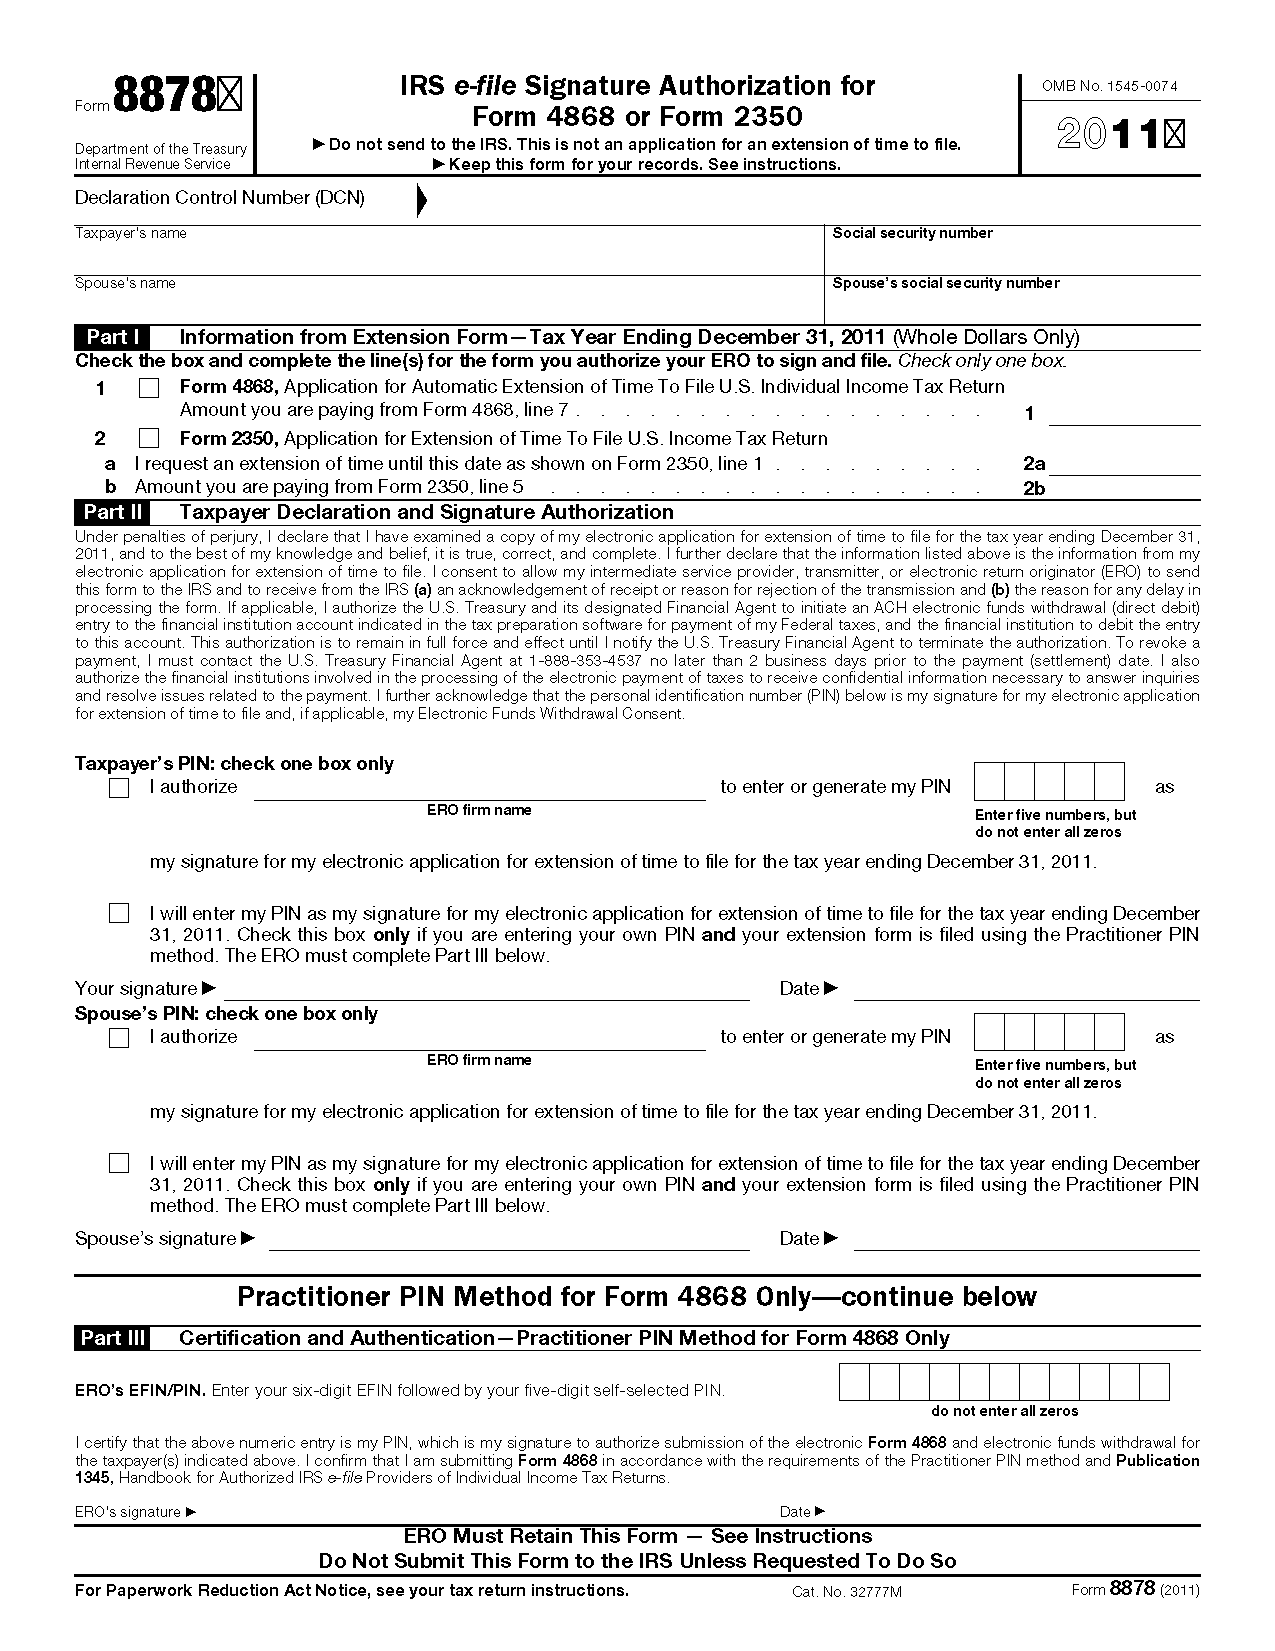 Form 8878 IRS e-file Signature Authorization for Form 4868 or Form ...